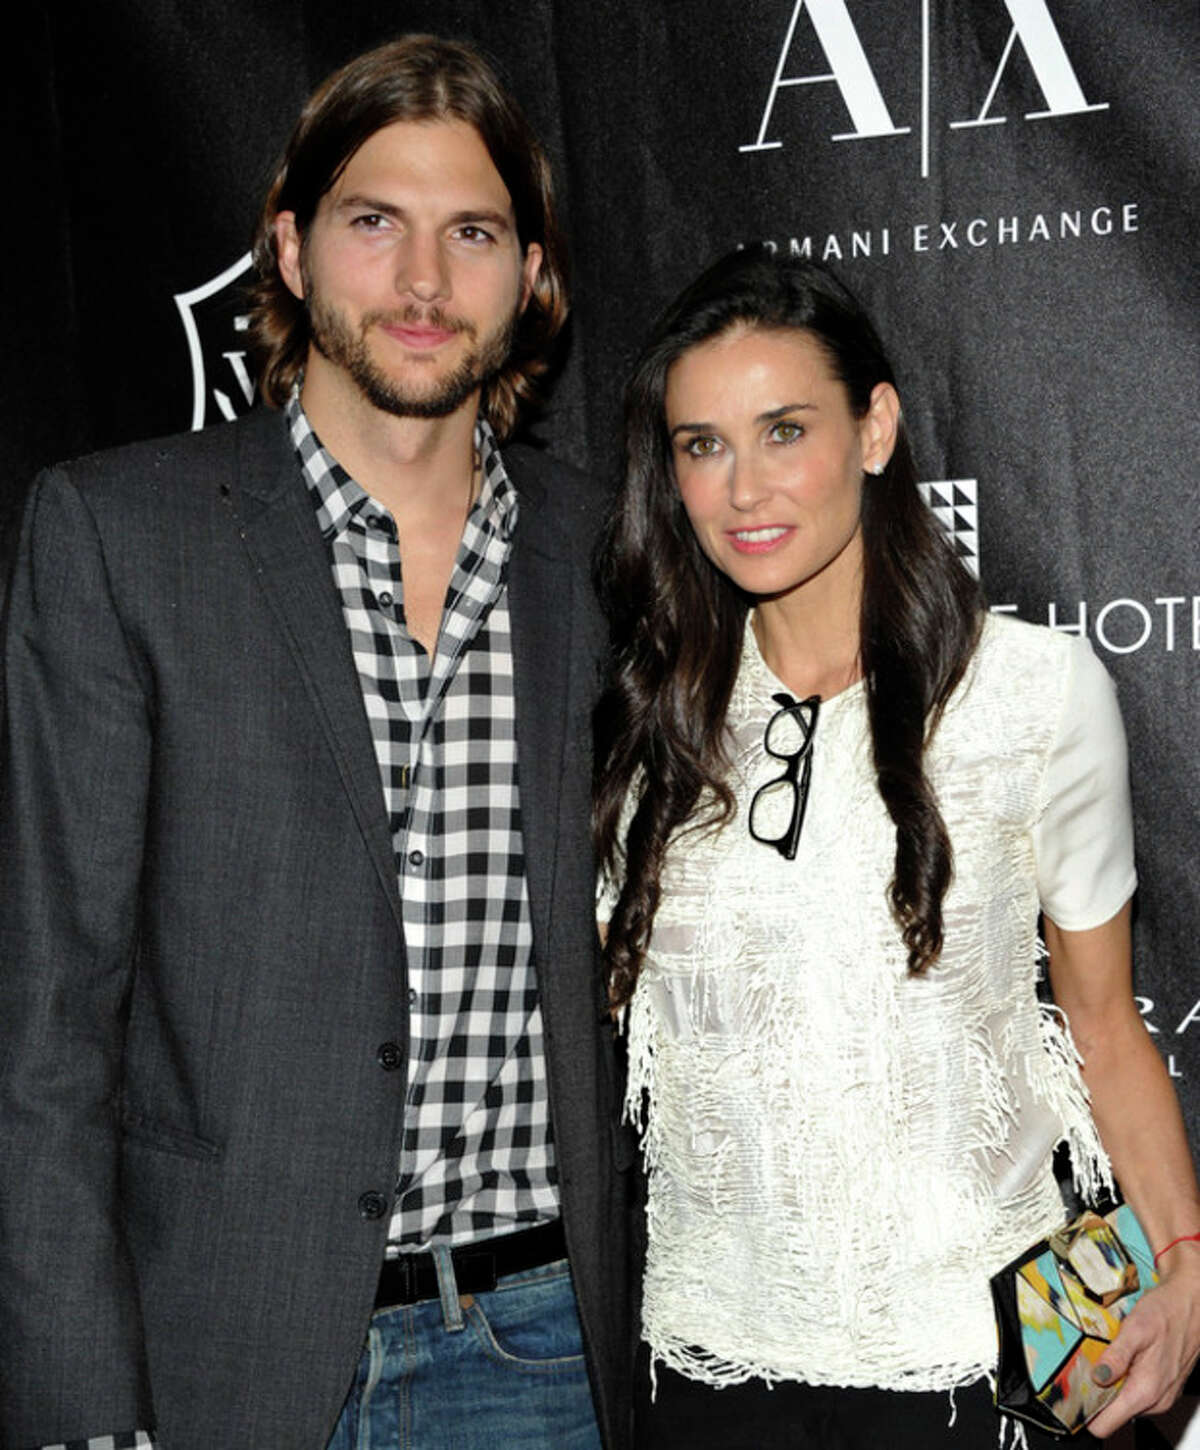 FILE - In this June 9, 2011 file photo, actors Ashton Kutcher and Demi Moore attend the first annual Stephan Weiss Apple Awards at the Urban Zen Center in New York. A Los Angeles judge finalized Moore and Kutcher's divorce on Tuesday, Nov. 26, 2013, less than a year after Kutcher's petitioned to end the couple's marriage. (AP Photo/Evan Agostini, file)